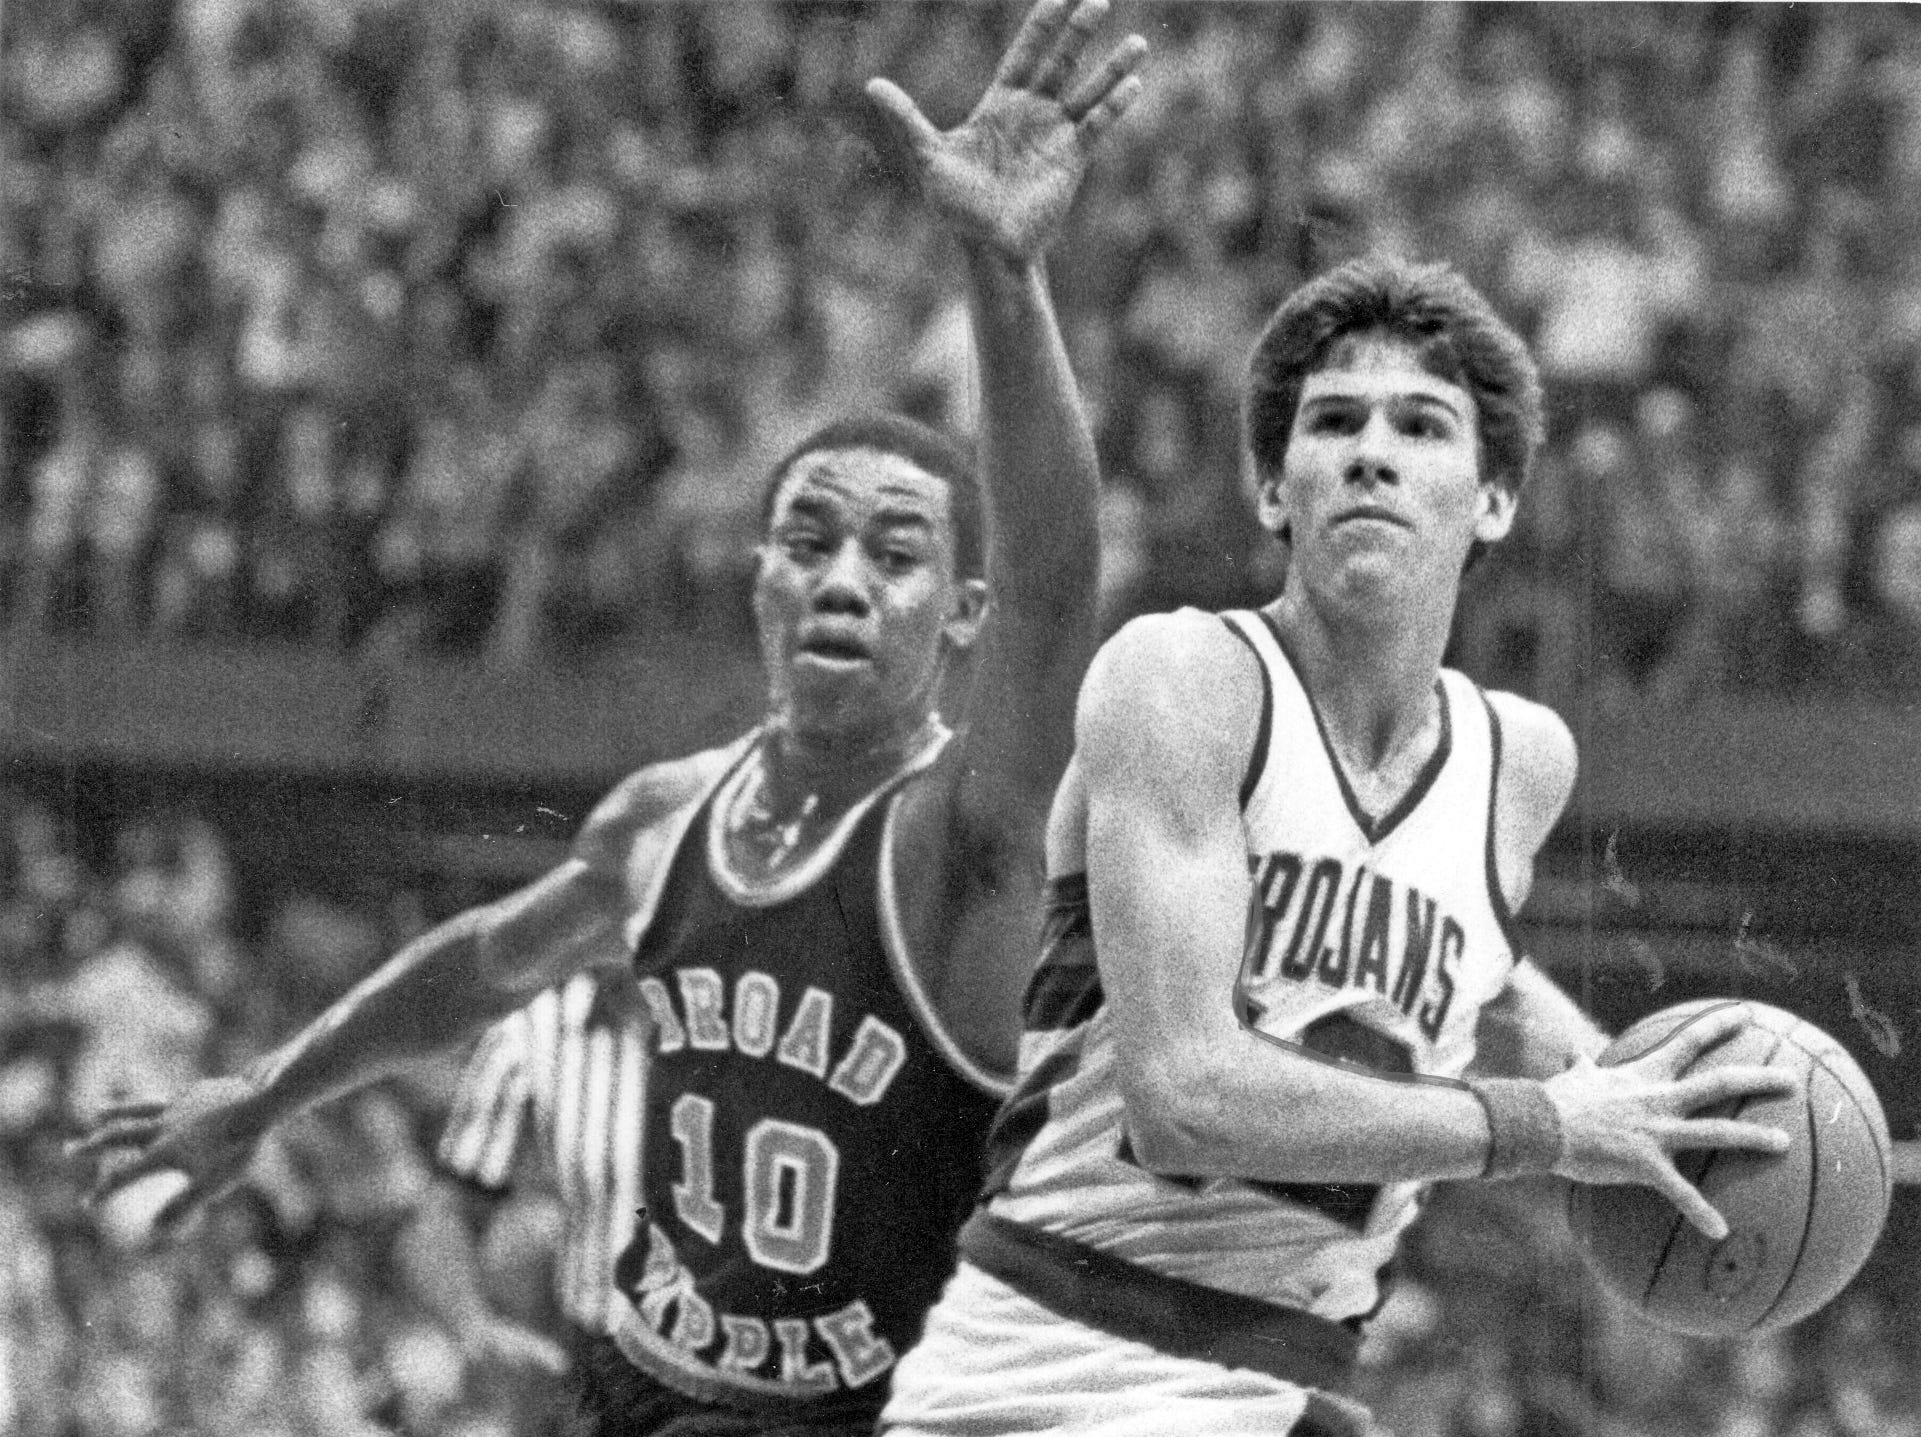 Steve Alford (right) of New Castle steals the ball from Broad Ripple's Donnie Harris on his way in for a layup, March 21, 1983.